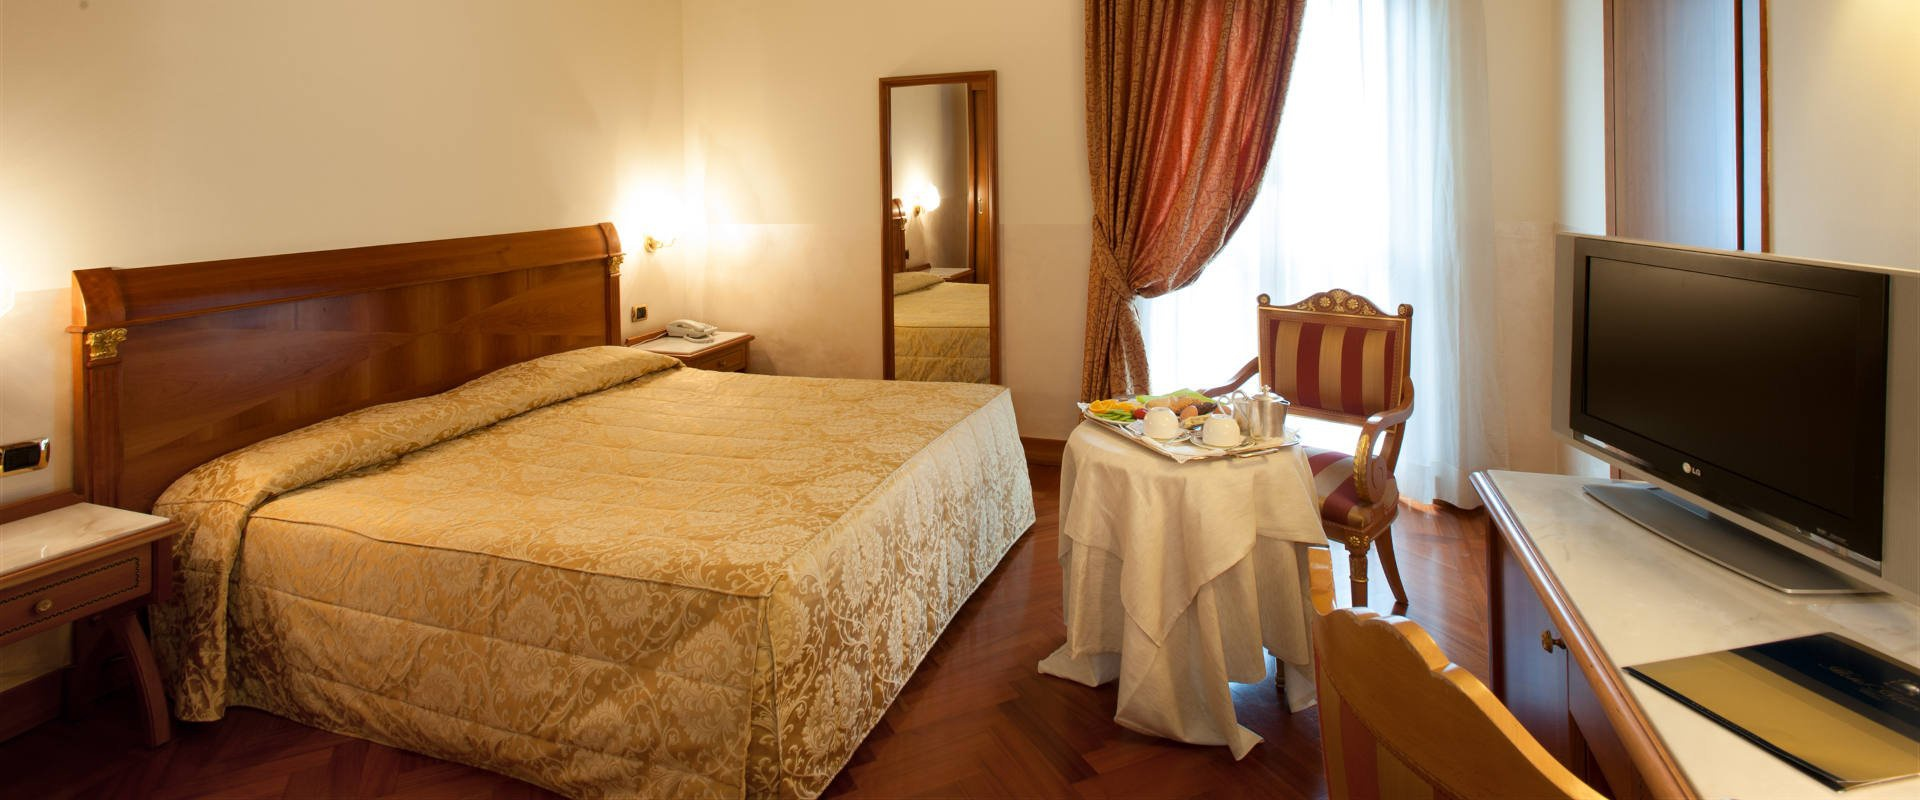 4-star hotel in milan centre marconi hotel